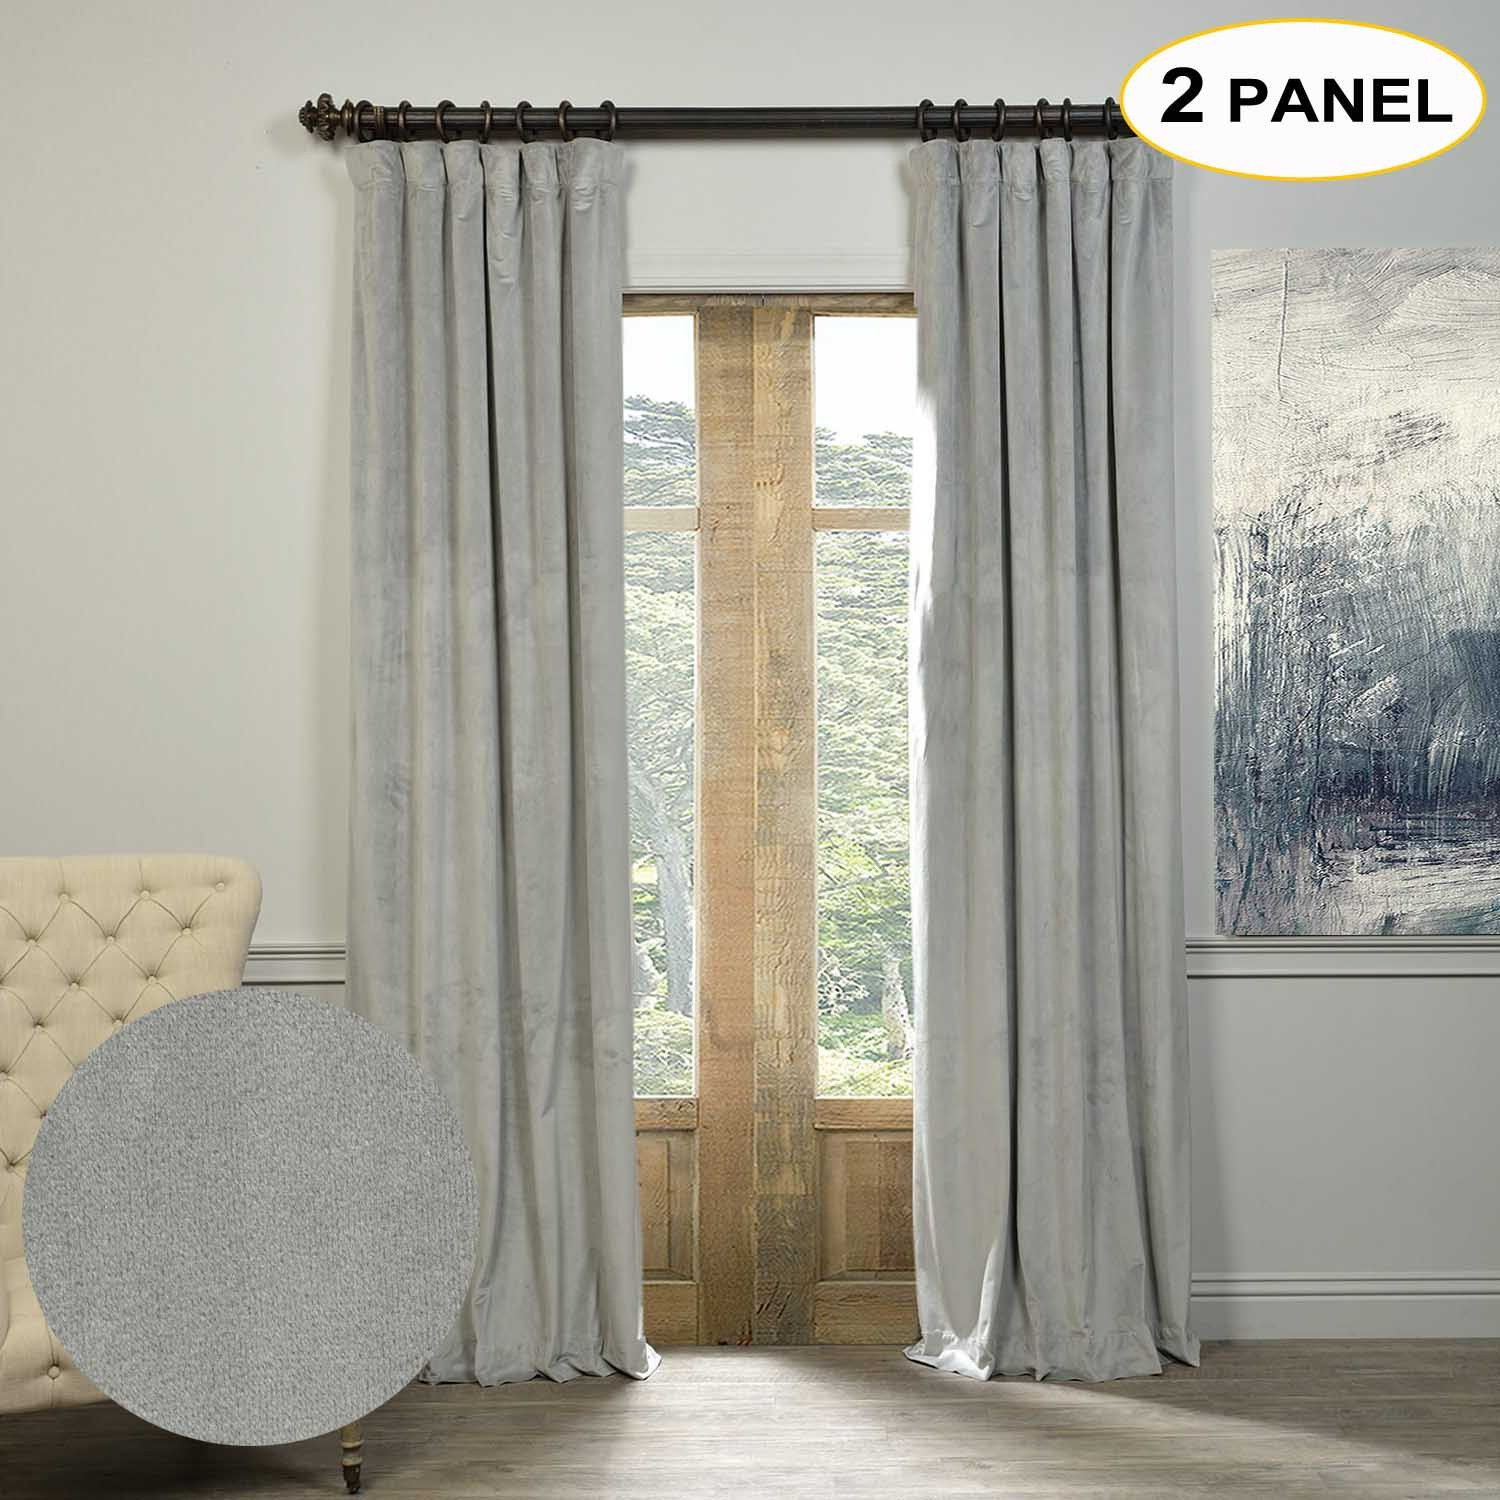 Artdix Blackout Curtains Panels Window Drapes - Silver Grey 72W x 108L Inches (2 Panels) Velvet Lined Back Tab Nursery Insulated Solid Thermal Custom Curtains For Bedroom, Living Room, Kids Room